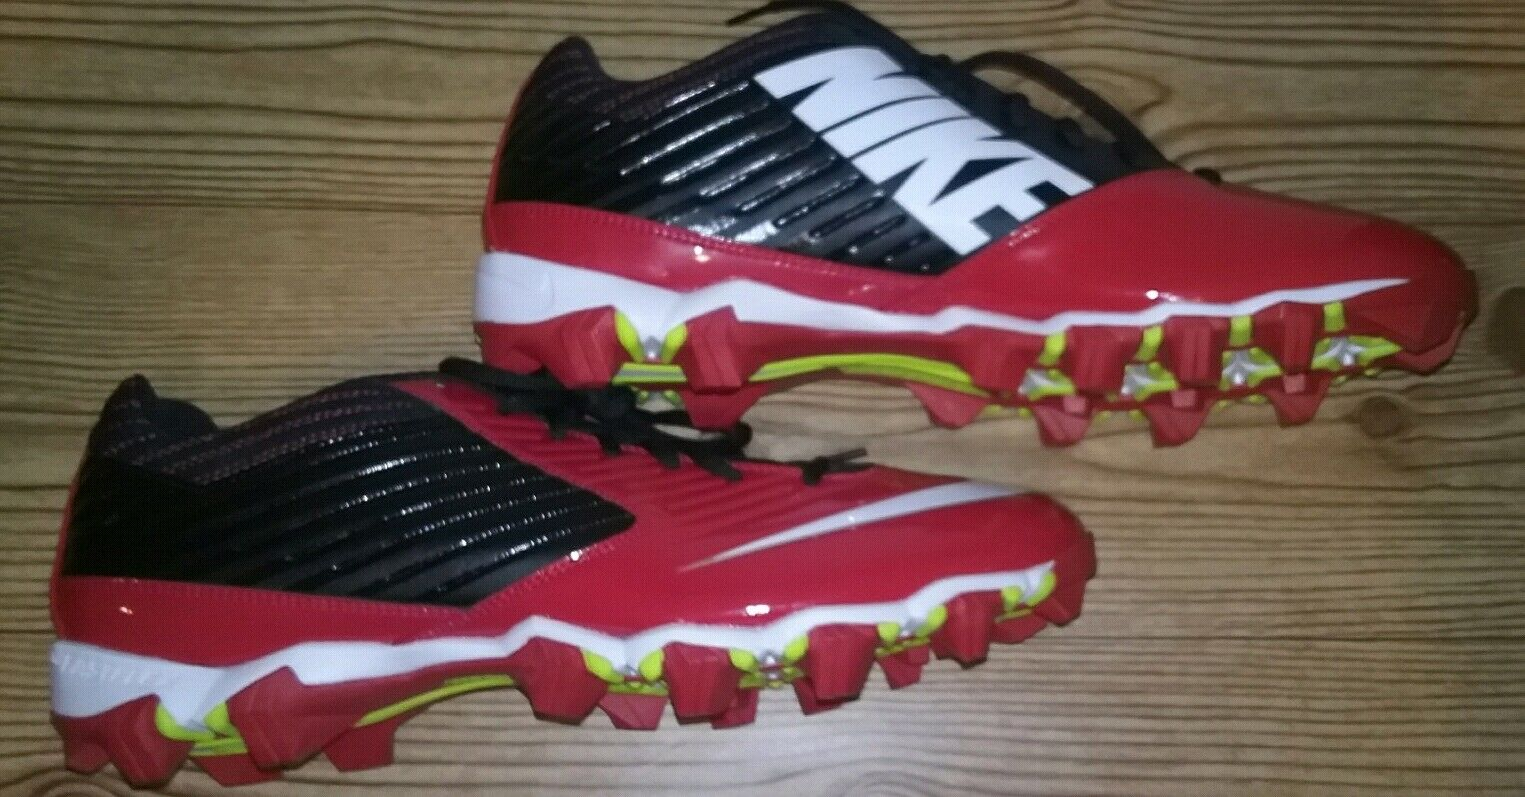 info for dacb1 945a3 Nike Nike Nike 643162-016 Vapor Shark Red Black Cleats Mens Size 13 BRAND  NEW